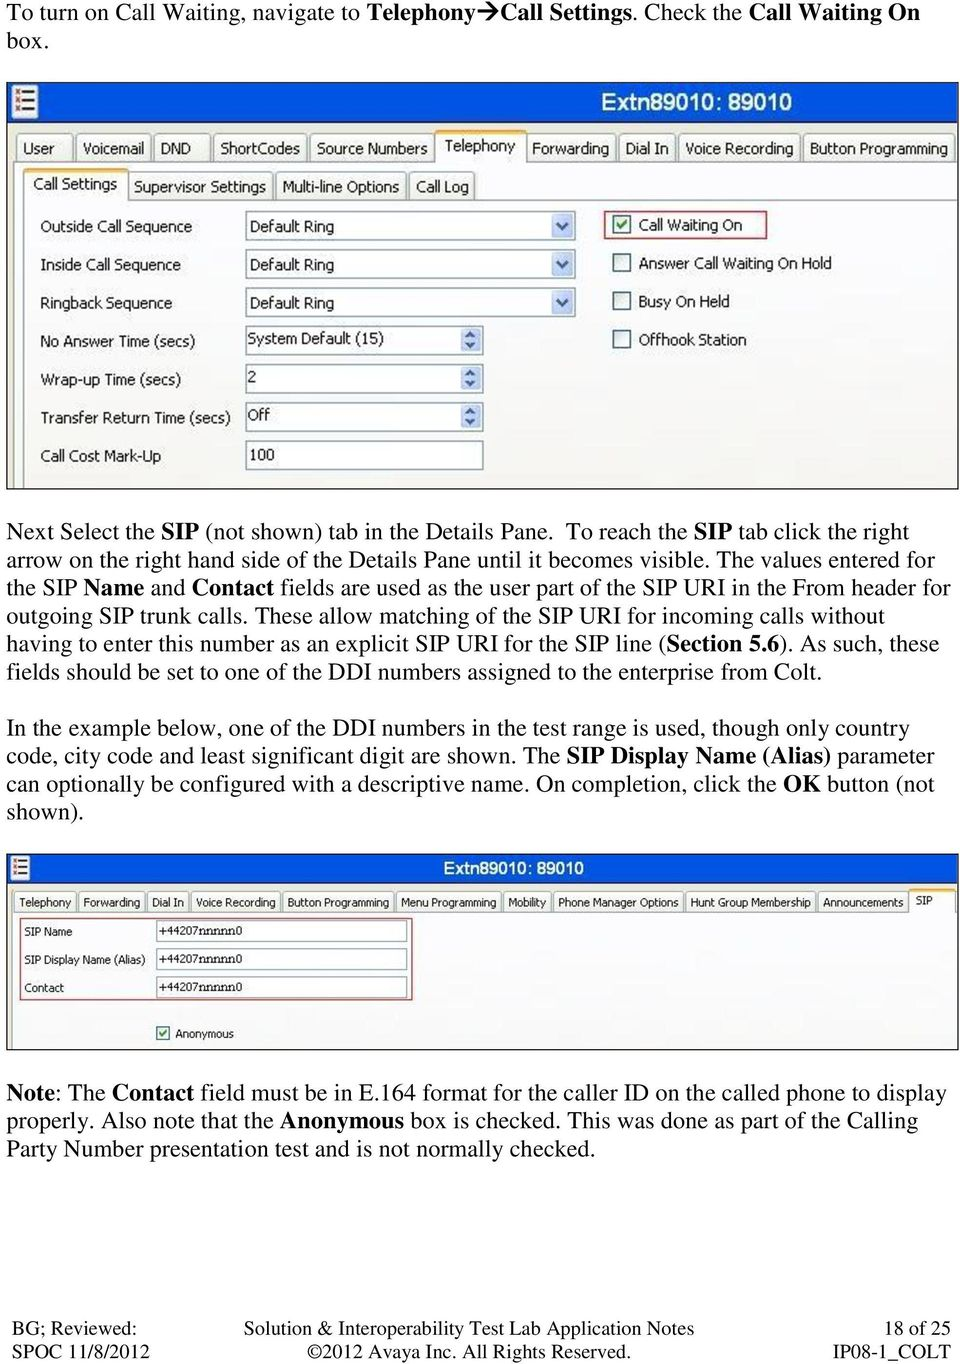 The values entered for the SIP Name and Contact fields are used as the user part of the SIP URI in the From header for outgoing SIP trunk calls.